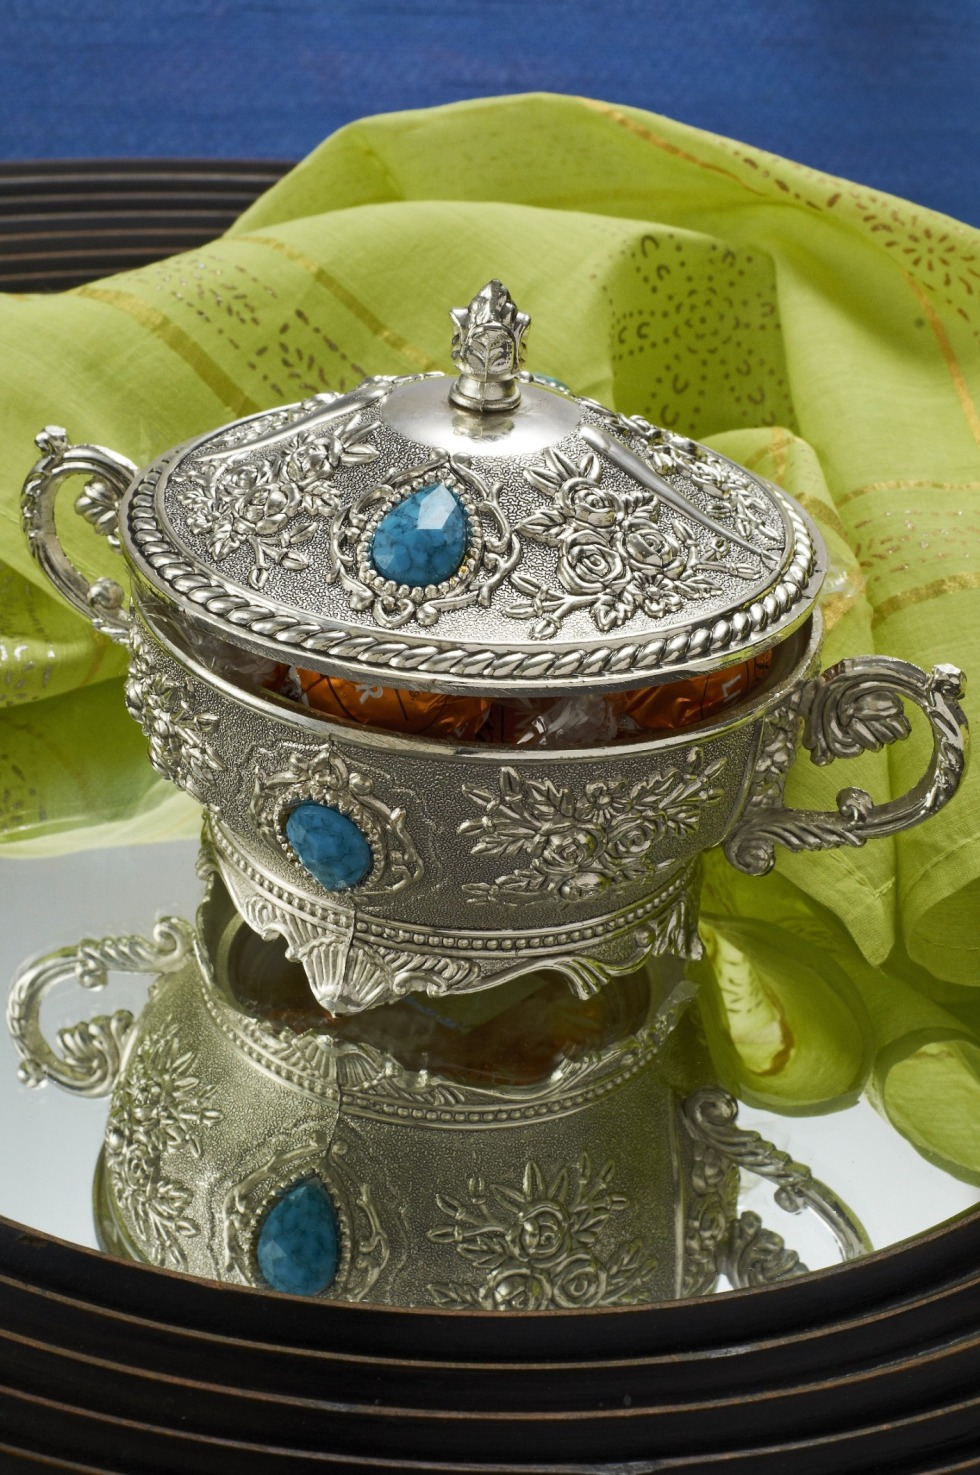 d'mart Exclusif IOTA silver-plated bowl, Rs 2,750